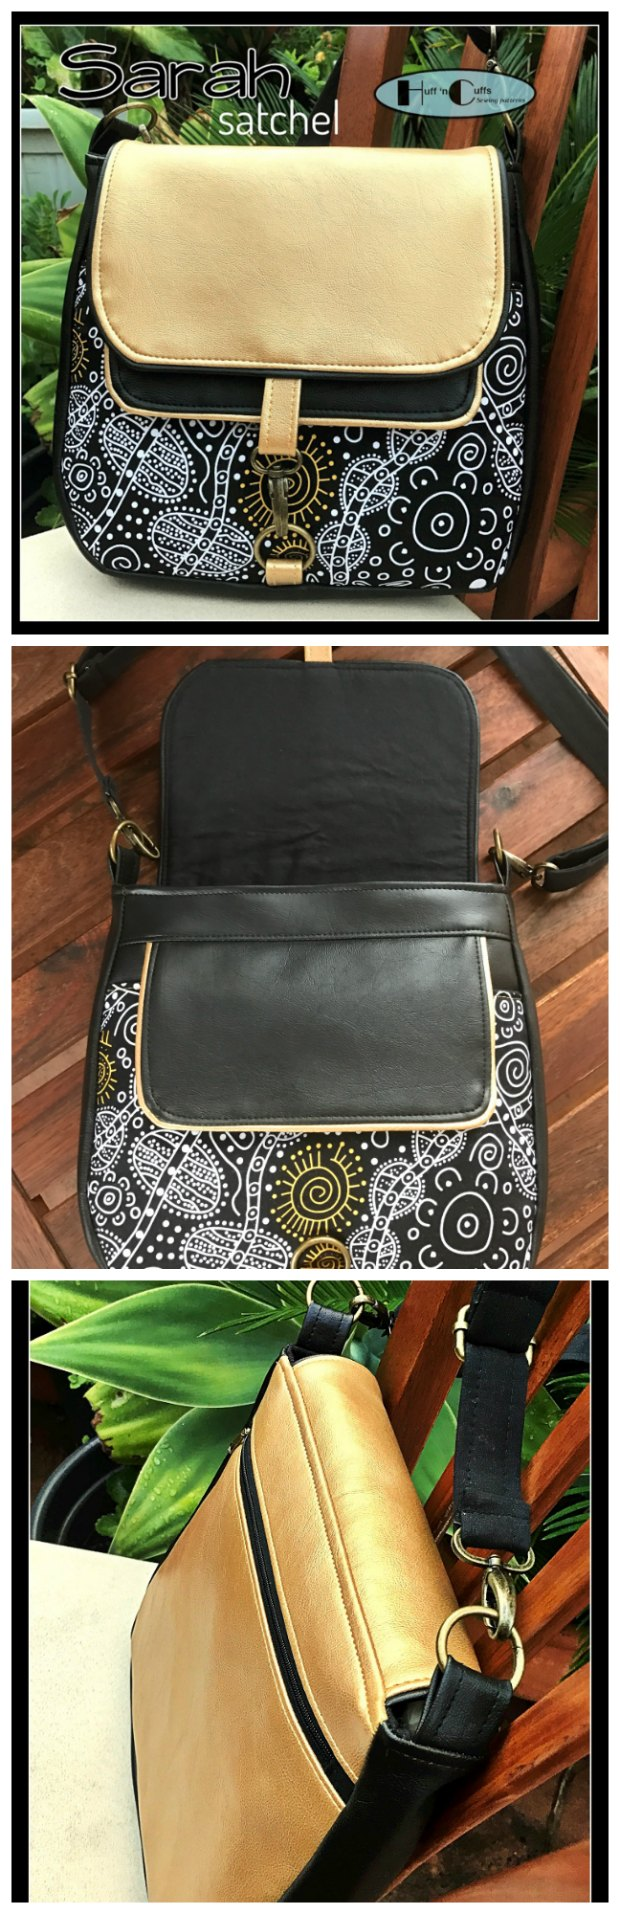 Sarah Satchel sewing pattern, works well in quilting cottons, home decor weight fabrics and vinyl or leather. A dream to sew and carry :-)